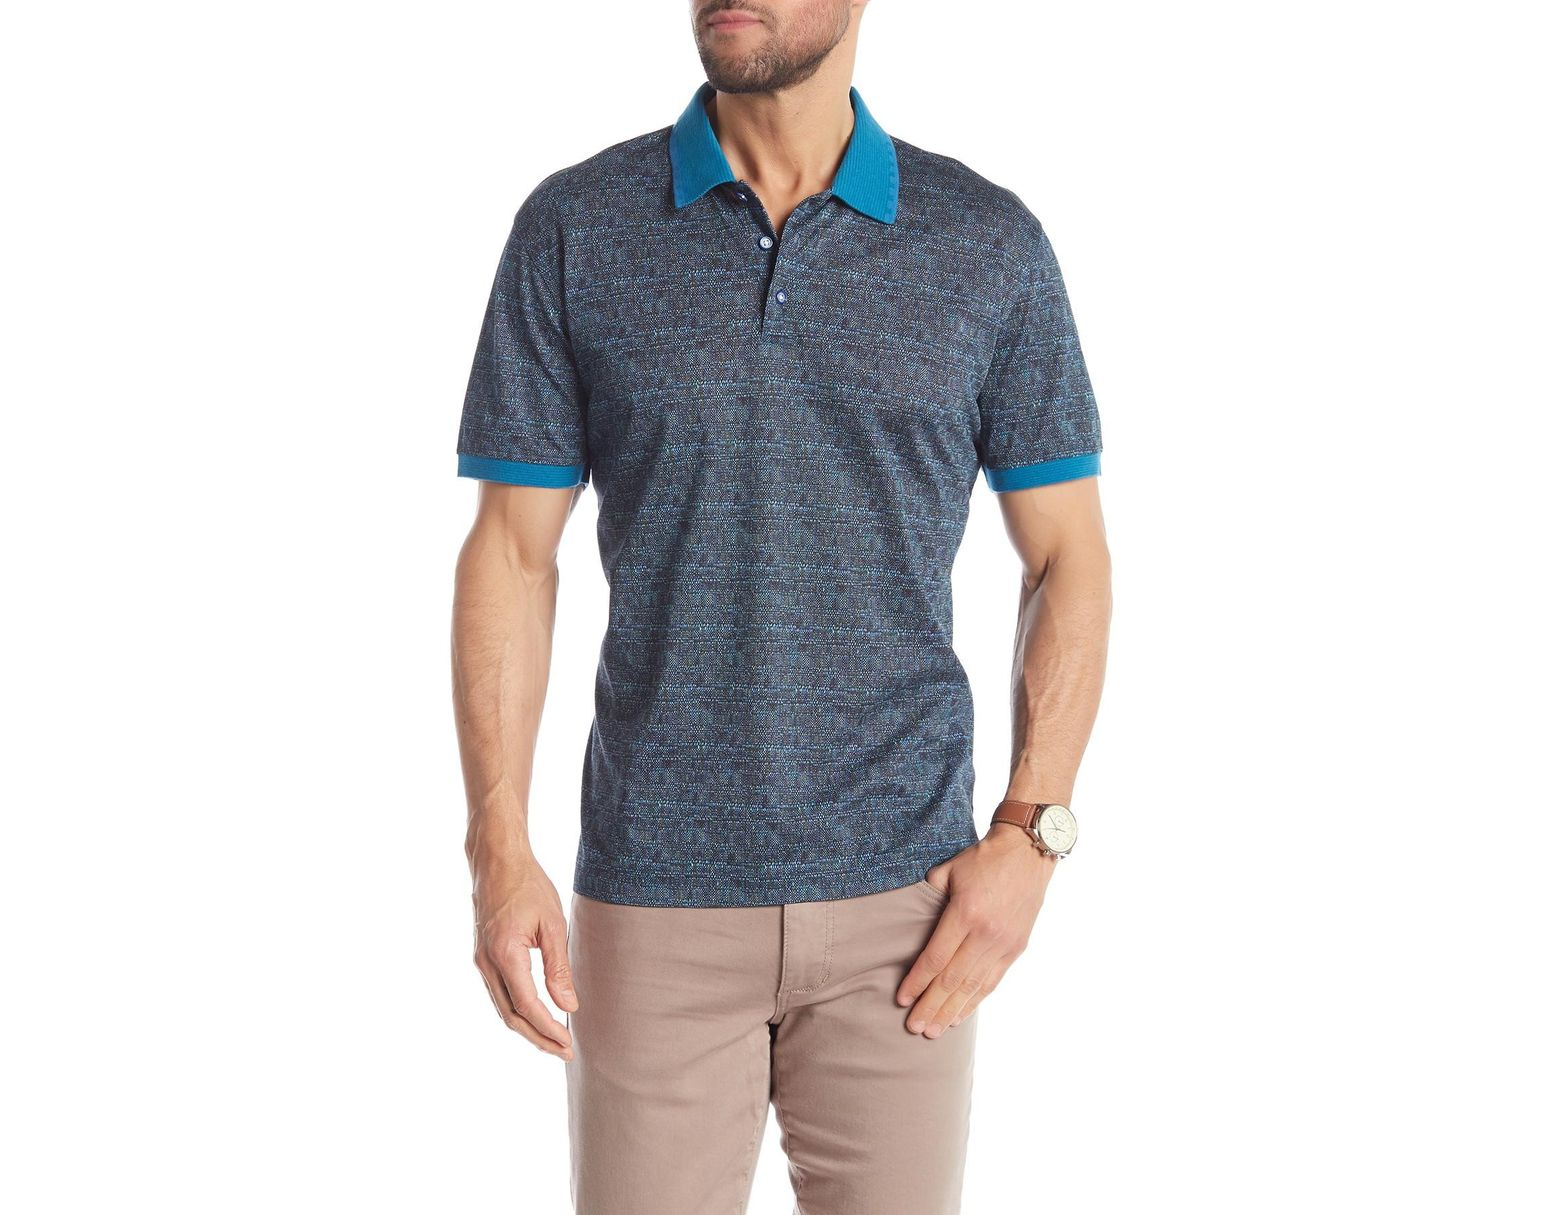 e0482adf Robert Graham Lewis Patterned Short Sleeve Polo in Blue for Men - Lyst